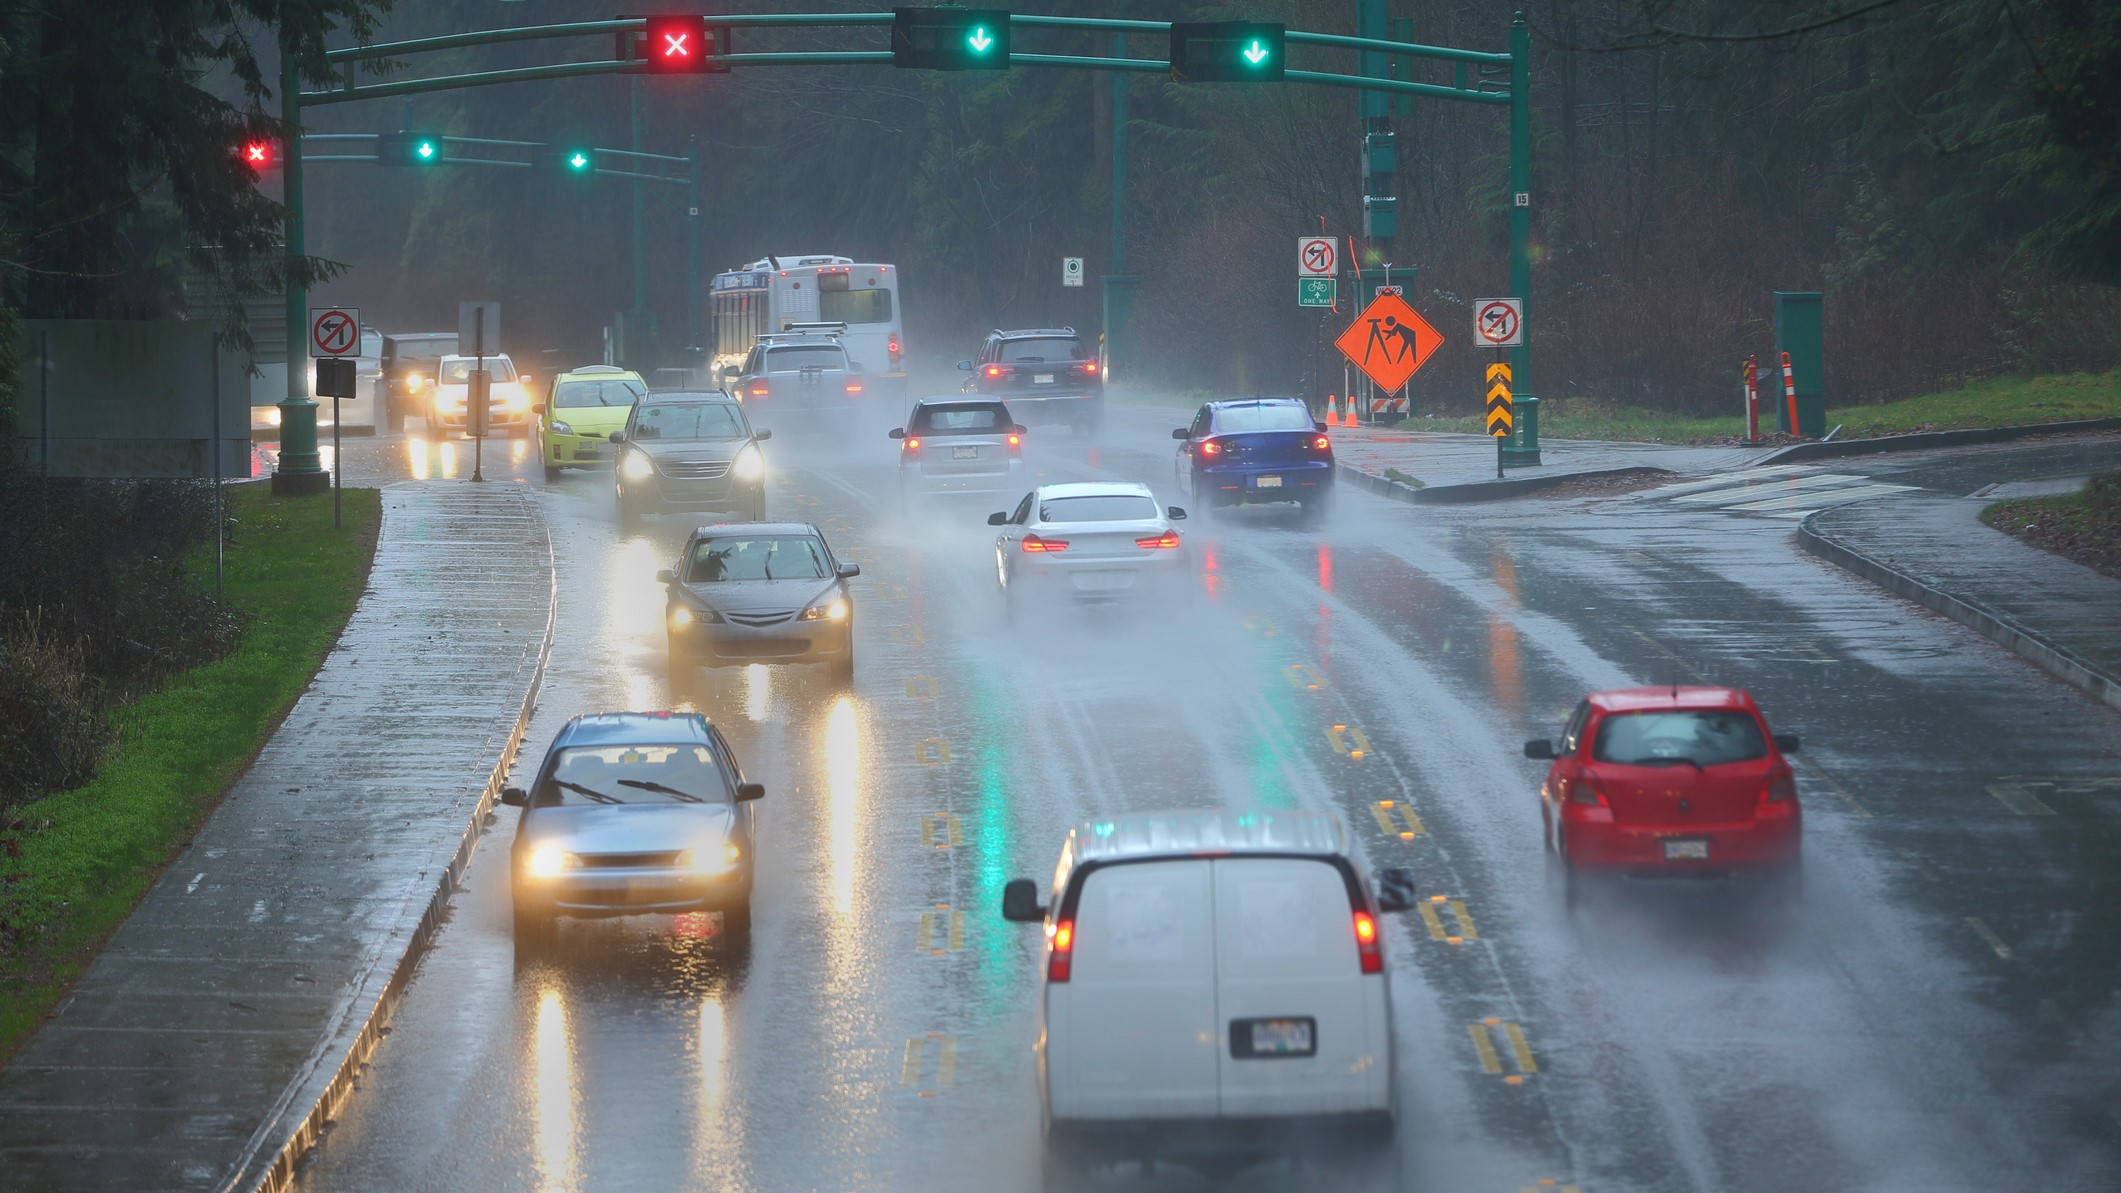 Rise Loans Reviews >> Tips for rainy day driving - CarLoans411.ca